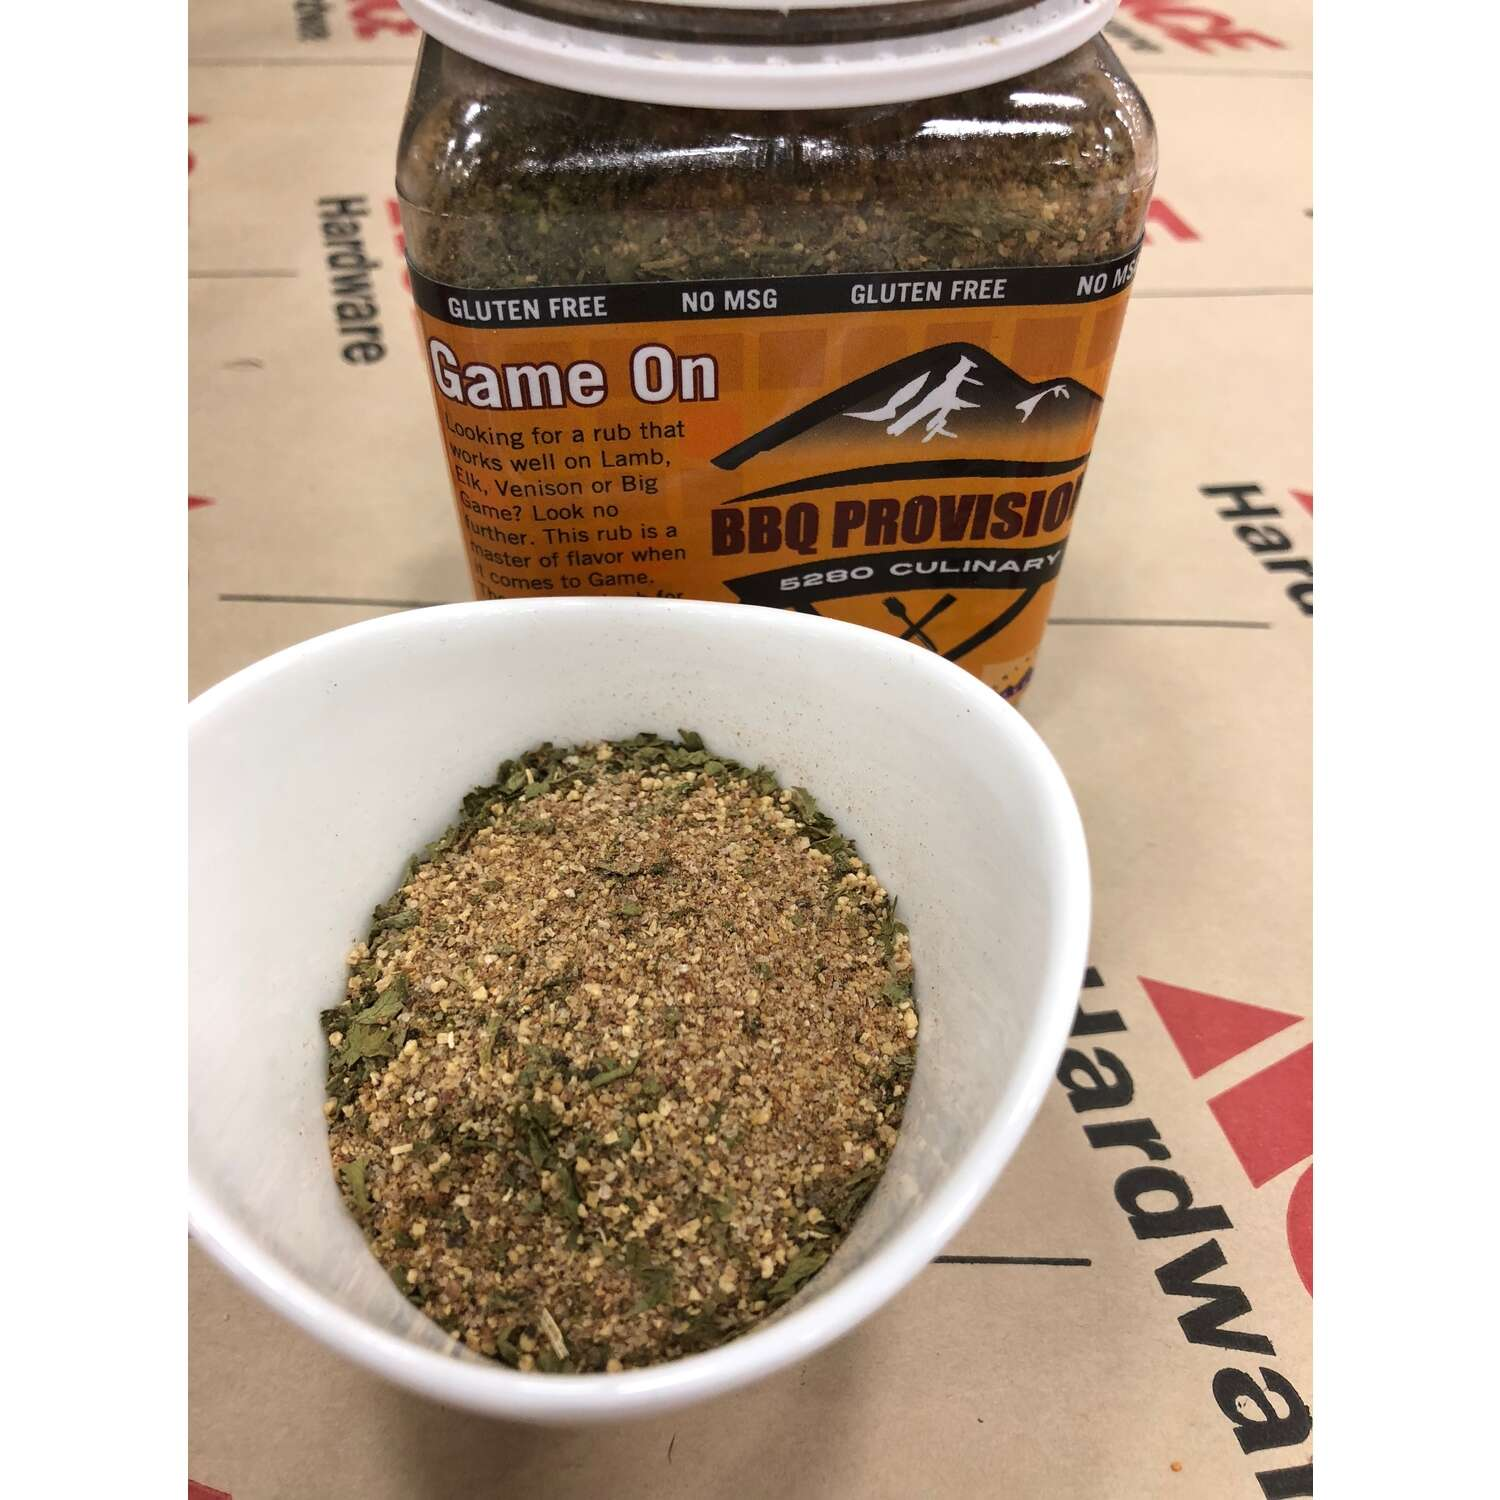 5280 Culinary  BBQ Provisions  Game On Rub  BBQ Rub  8 oz.